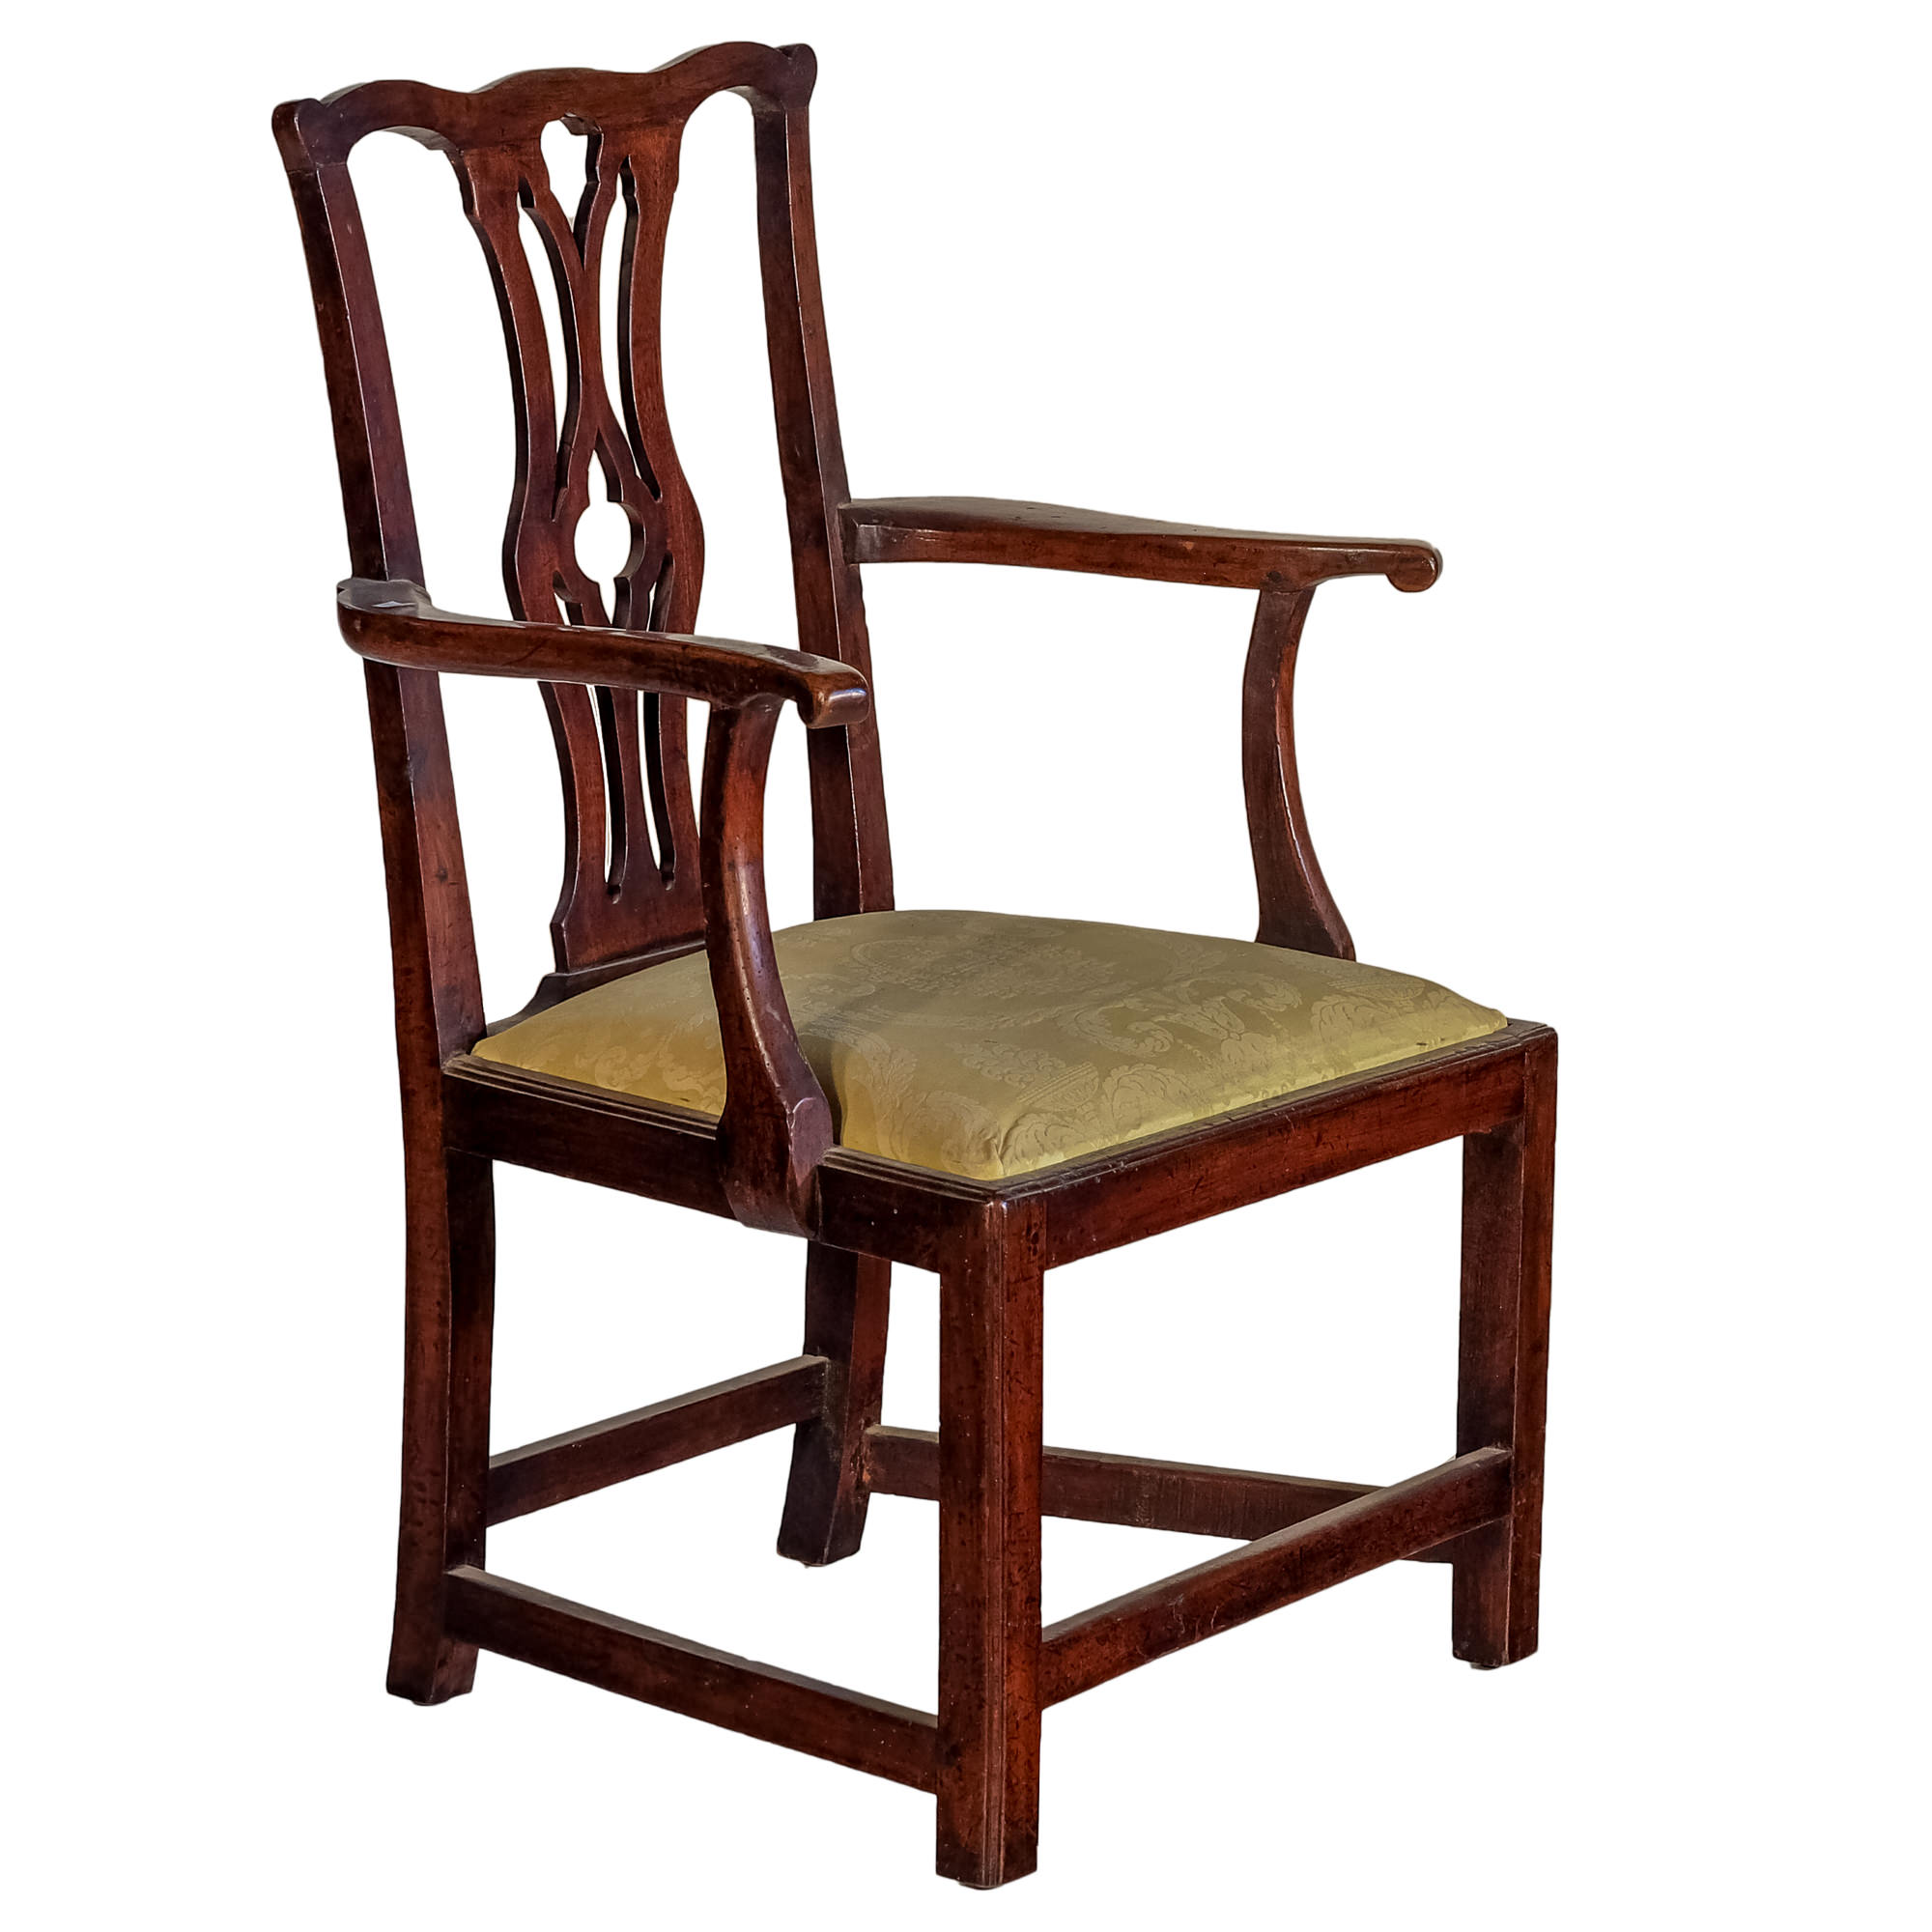 'George III Chippendale Mahogany Elbow Chair Circa 1780'